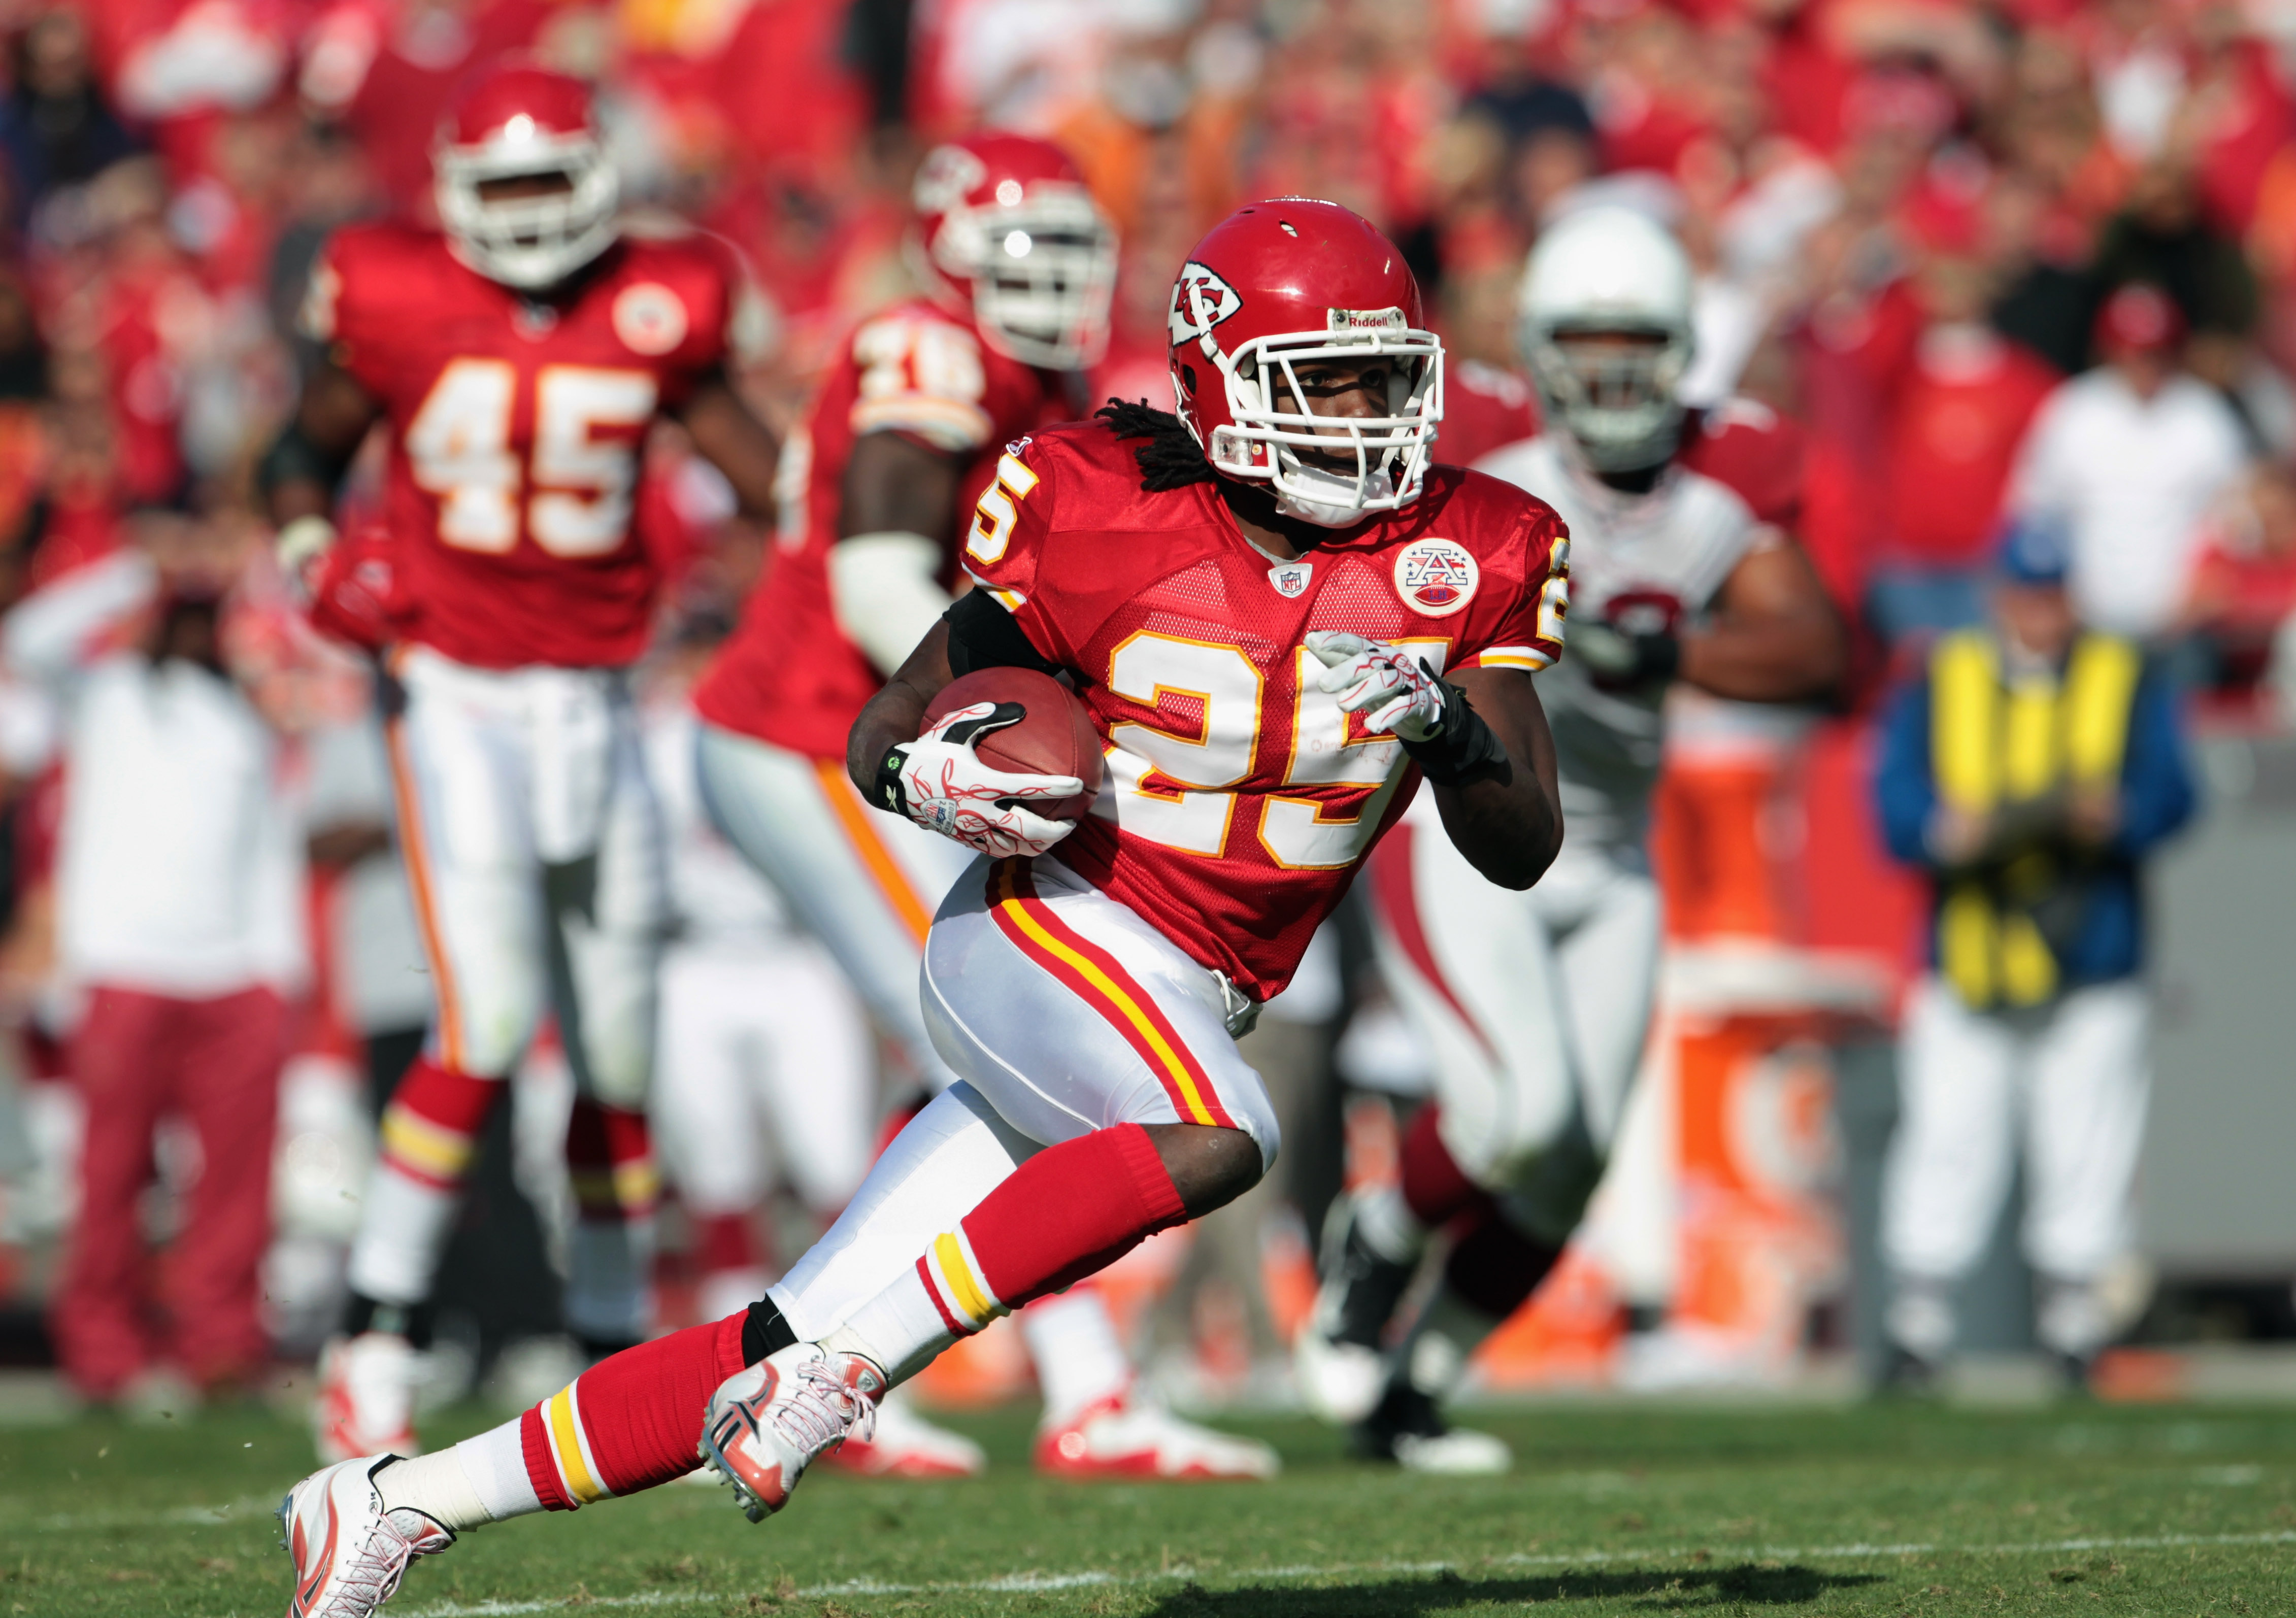 KANSAS CITY, MO - NOVEMBER 21:  Jamaal Charles #25 of the Kansas City Chiefs carries the ball during the game against the Arizona Cardinals on November 21, 2010  at Arrowhead Stadium in Kansas City, Missouri.  (Photo by Jamie Squire/Getty Images)